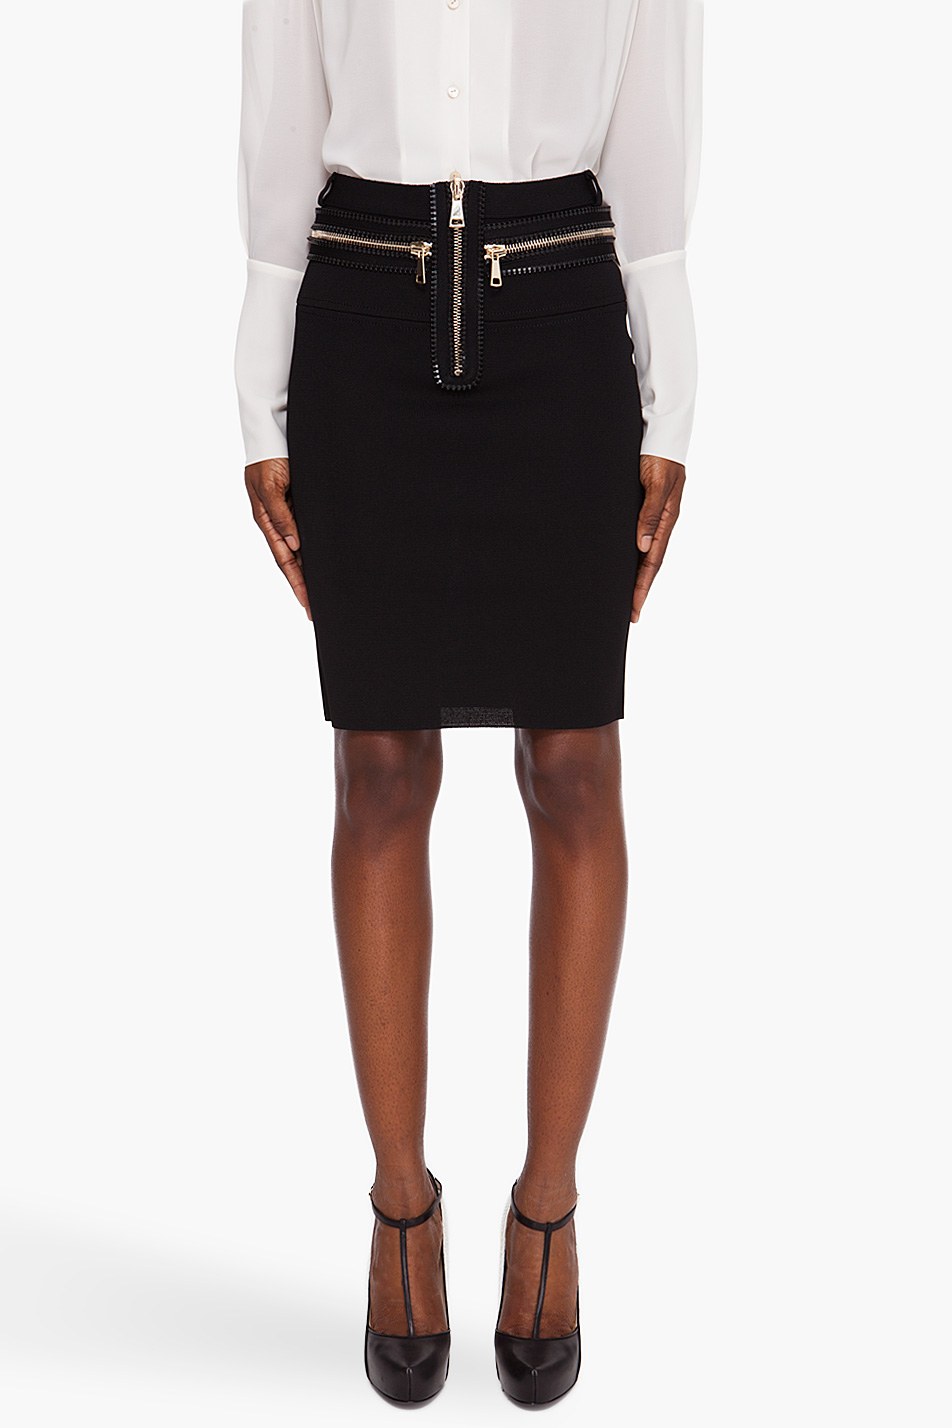 givenchy zip knit pencil skirt in black lyst